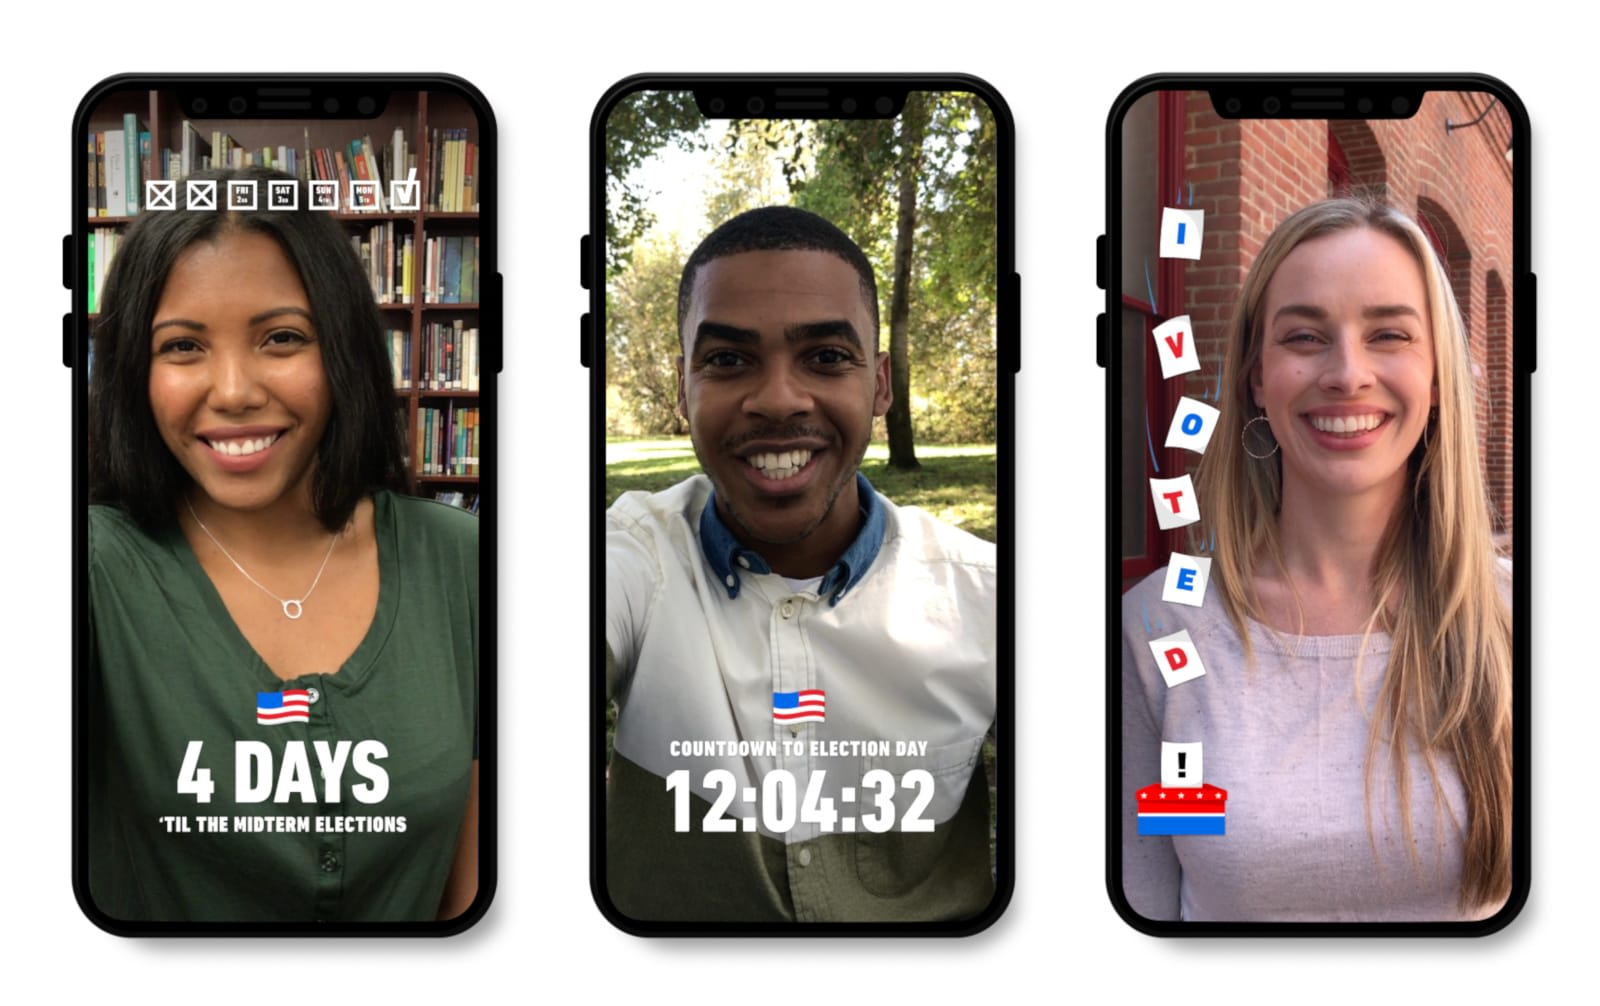 Snapchat pushes voters toward the nearest polling place